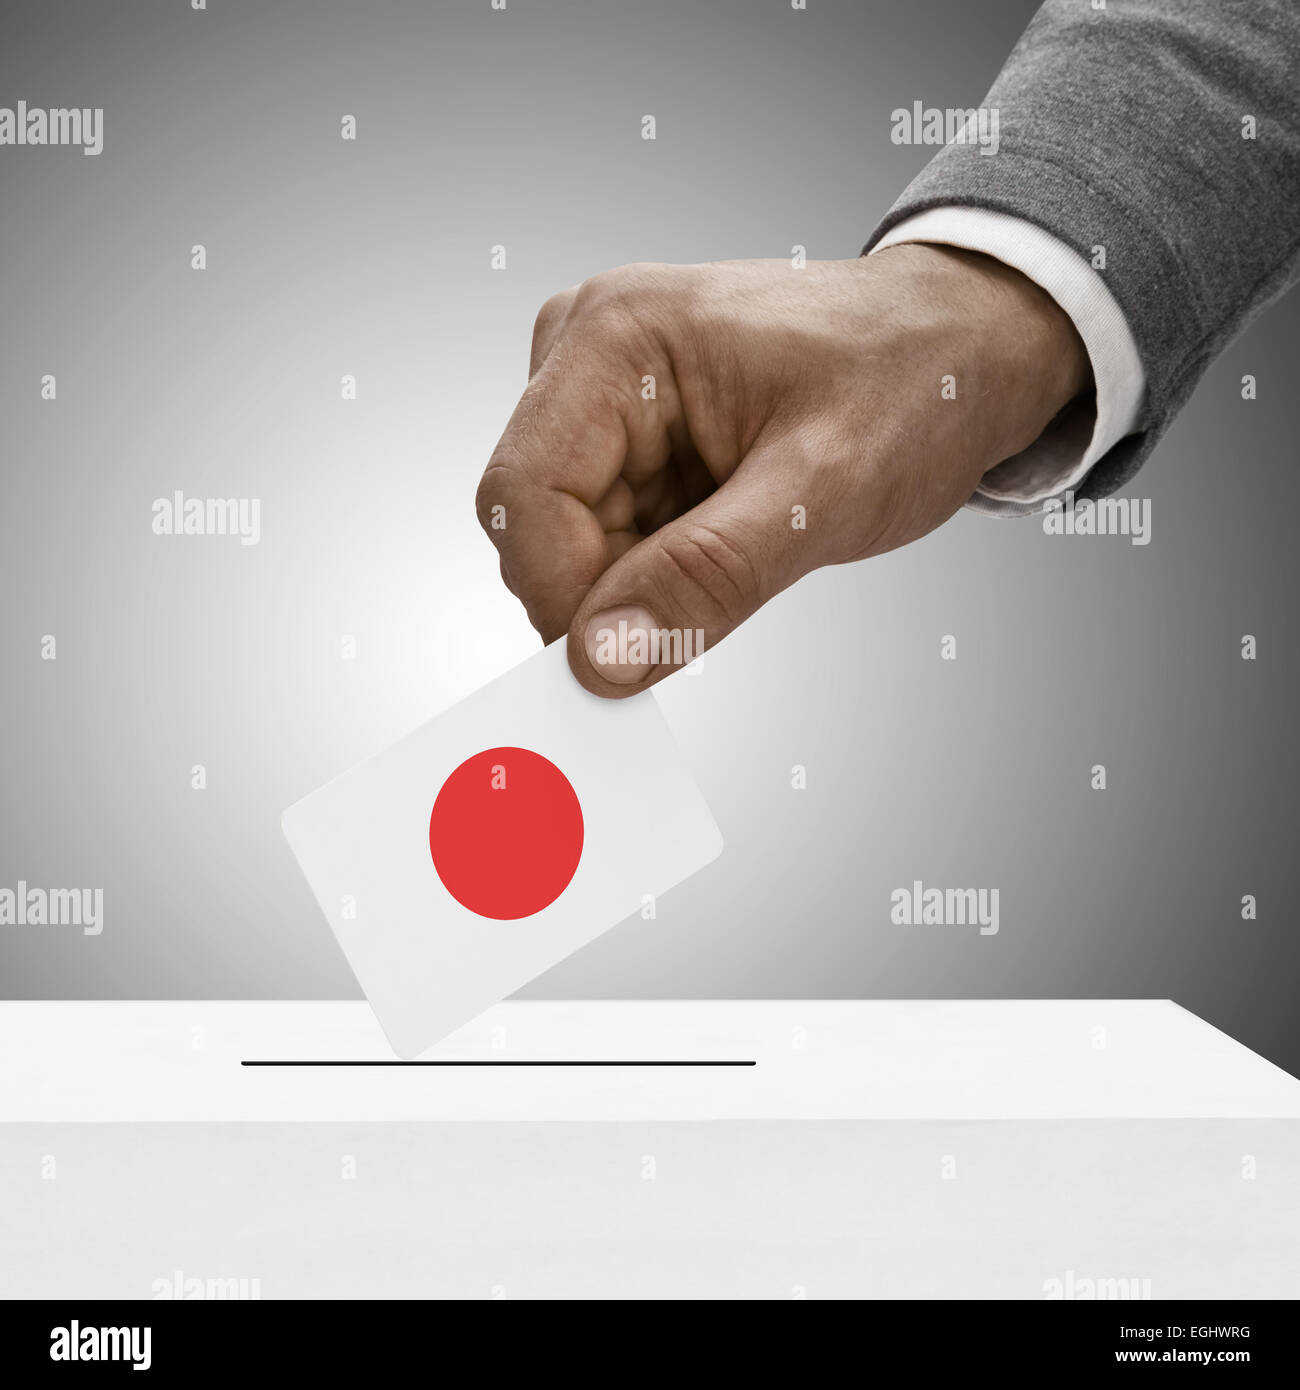 Black male holding flag. Voting concept - Japan Stock Photo